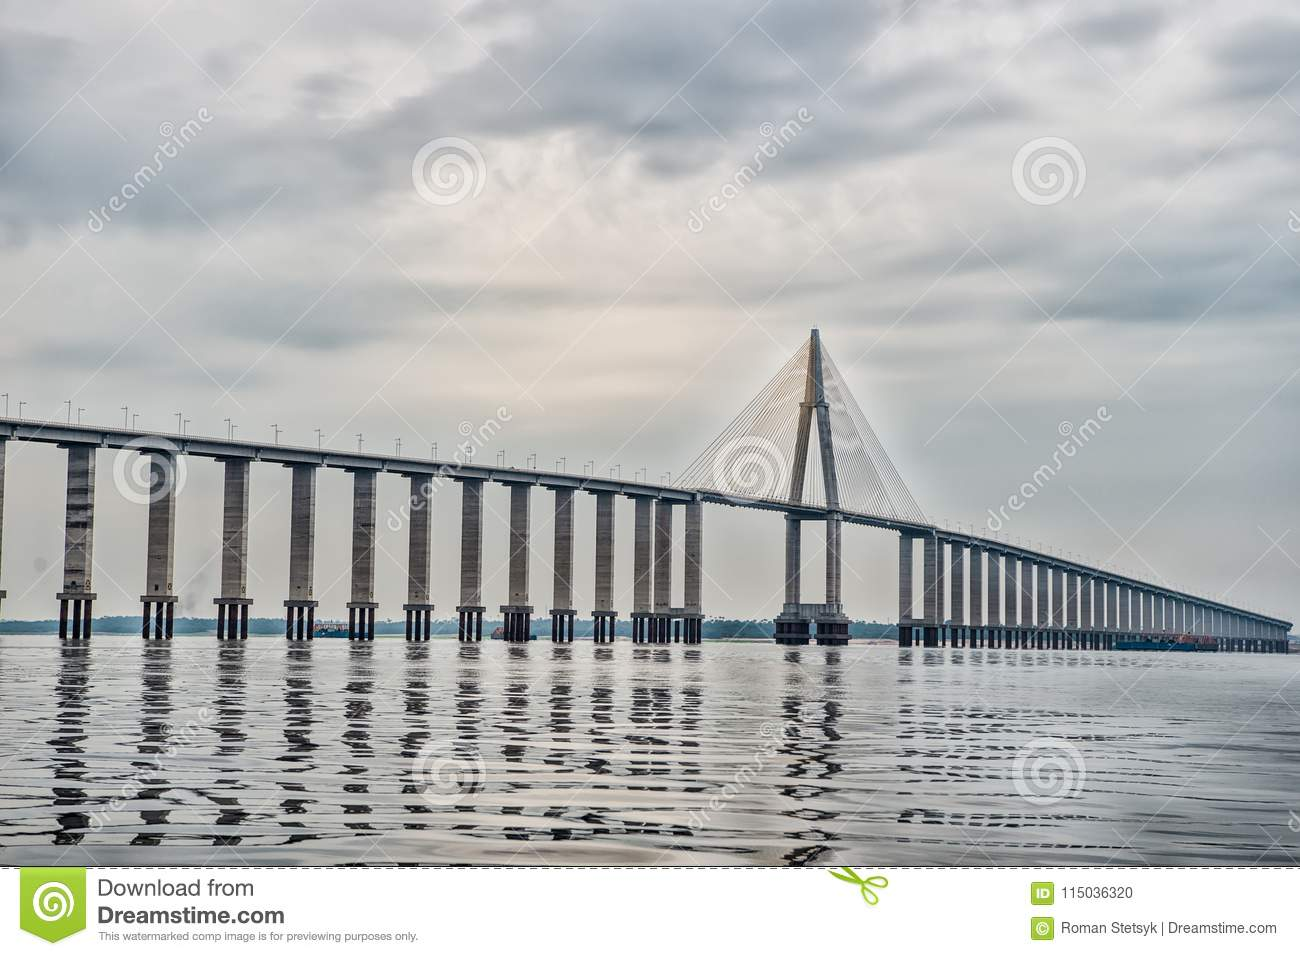 Road passage over water on cloudy sky. Bridge over sea in manaus, brazil. architecture and design concept. Travel destination and